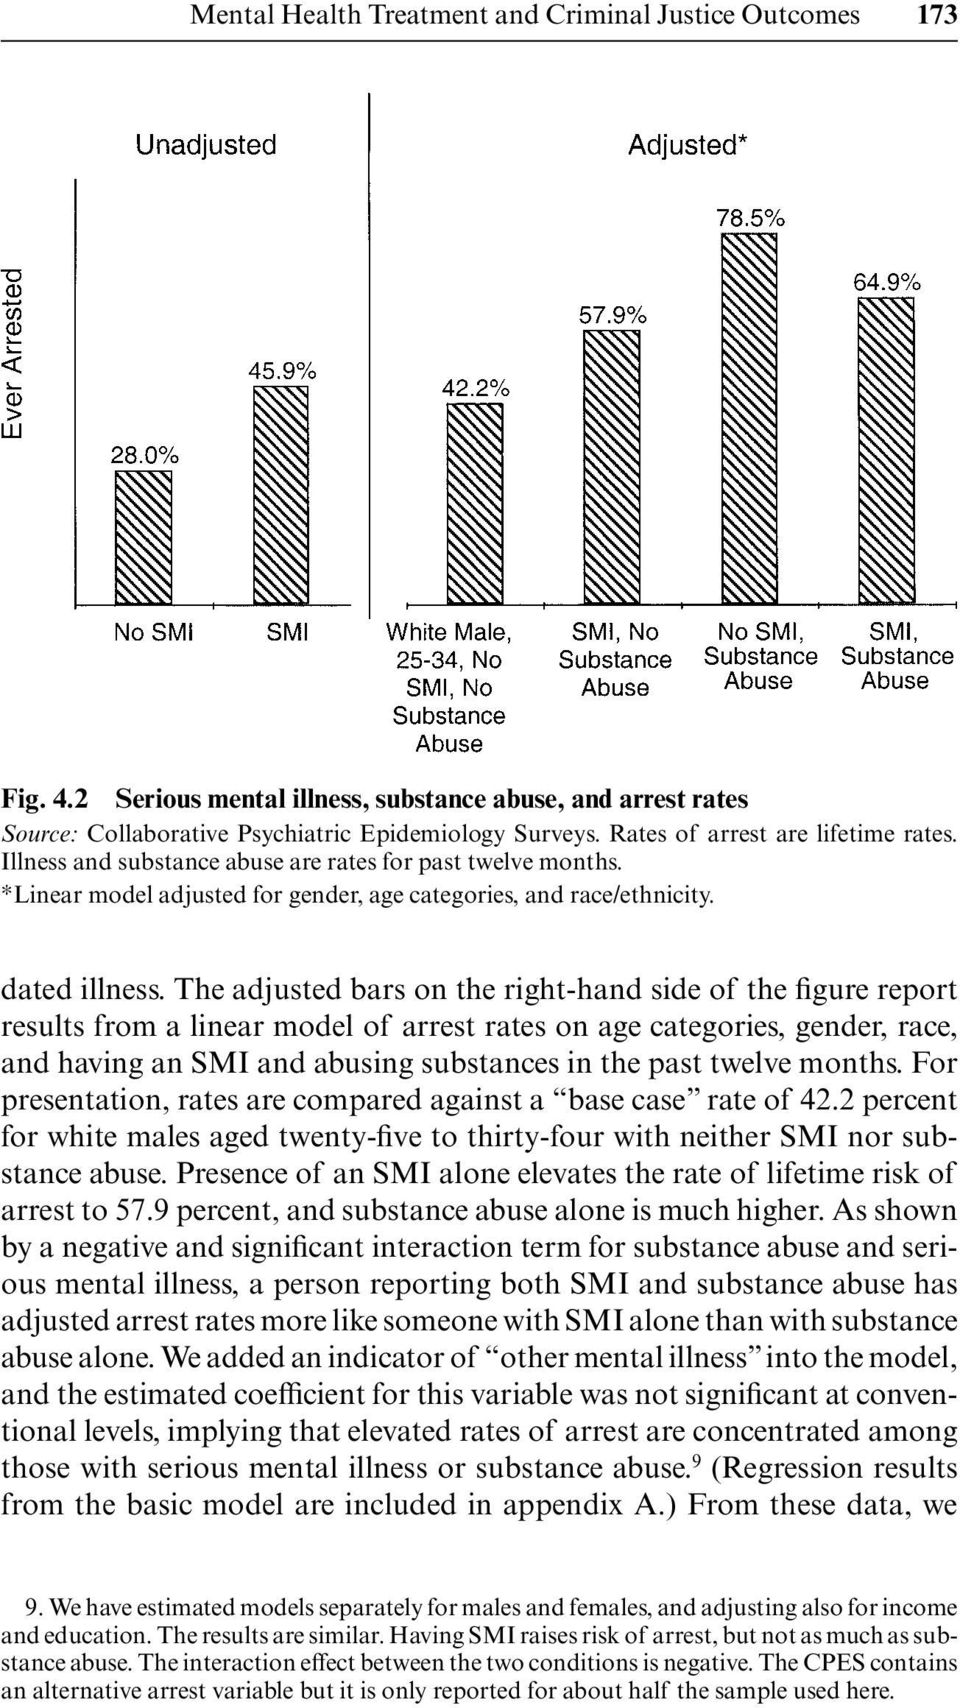 The adjusted bars on the right- hand side of the figure report results from a linear model of arrest rates on age categories, gender, race, and having an SMI and abusing substances in the past twelve